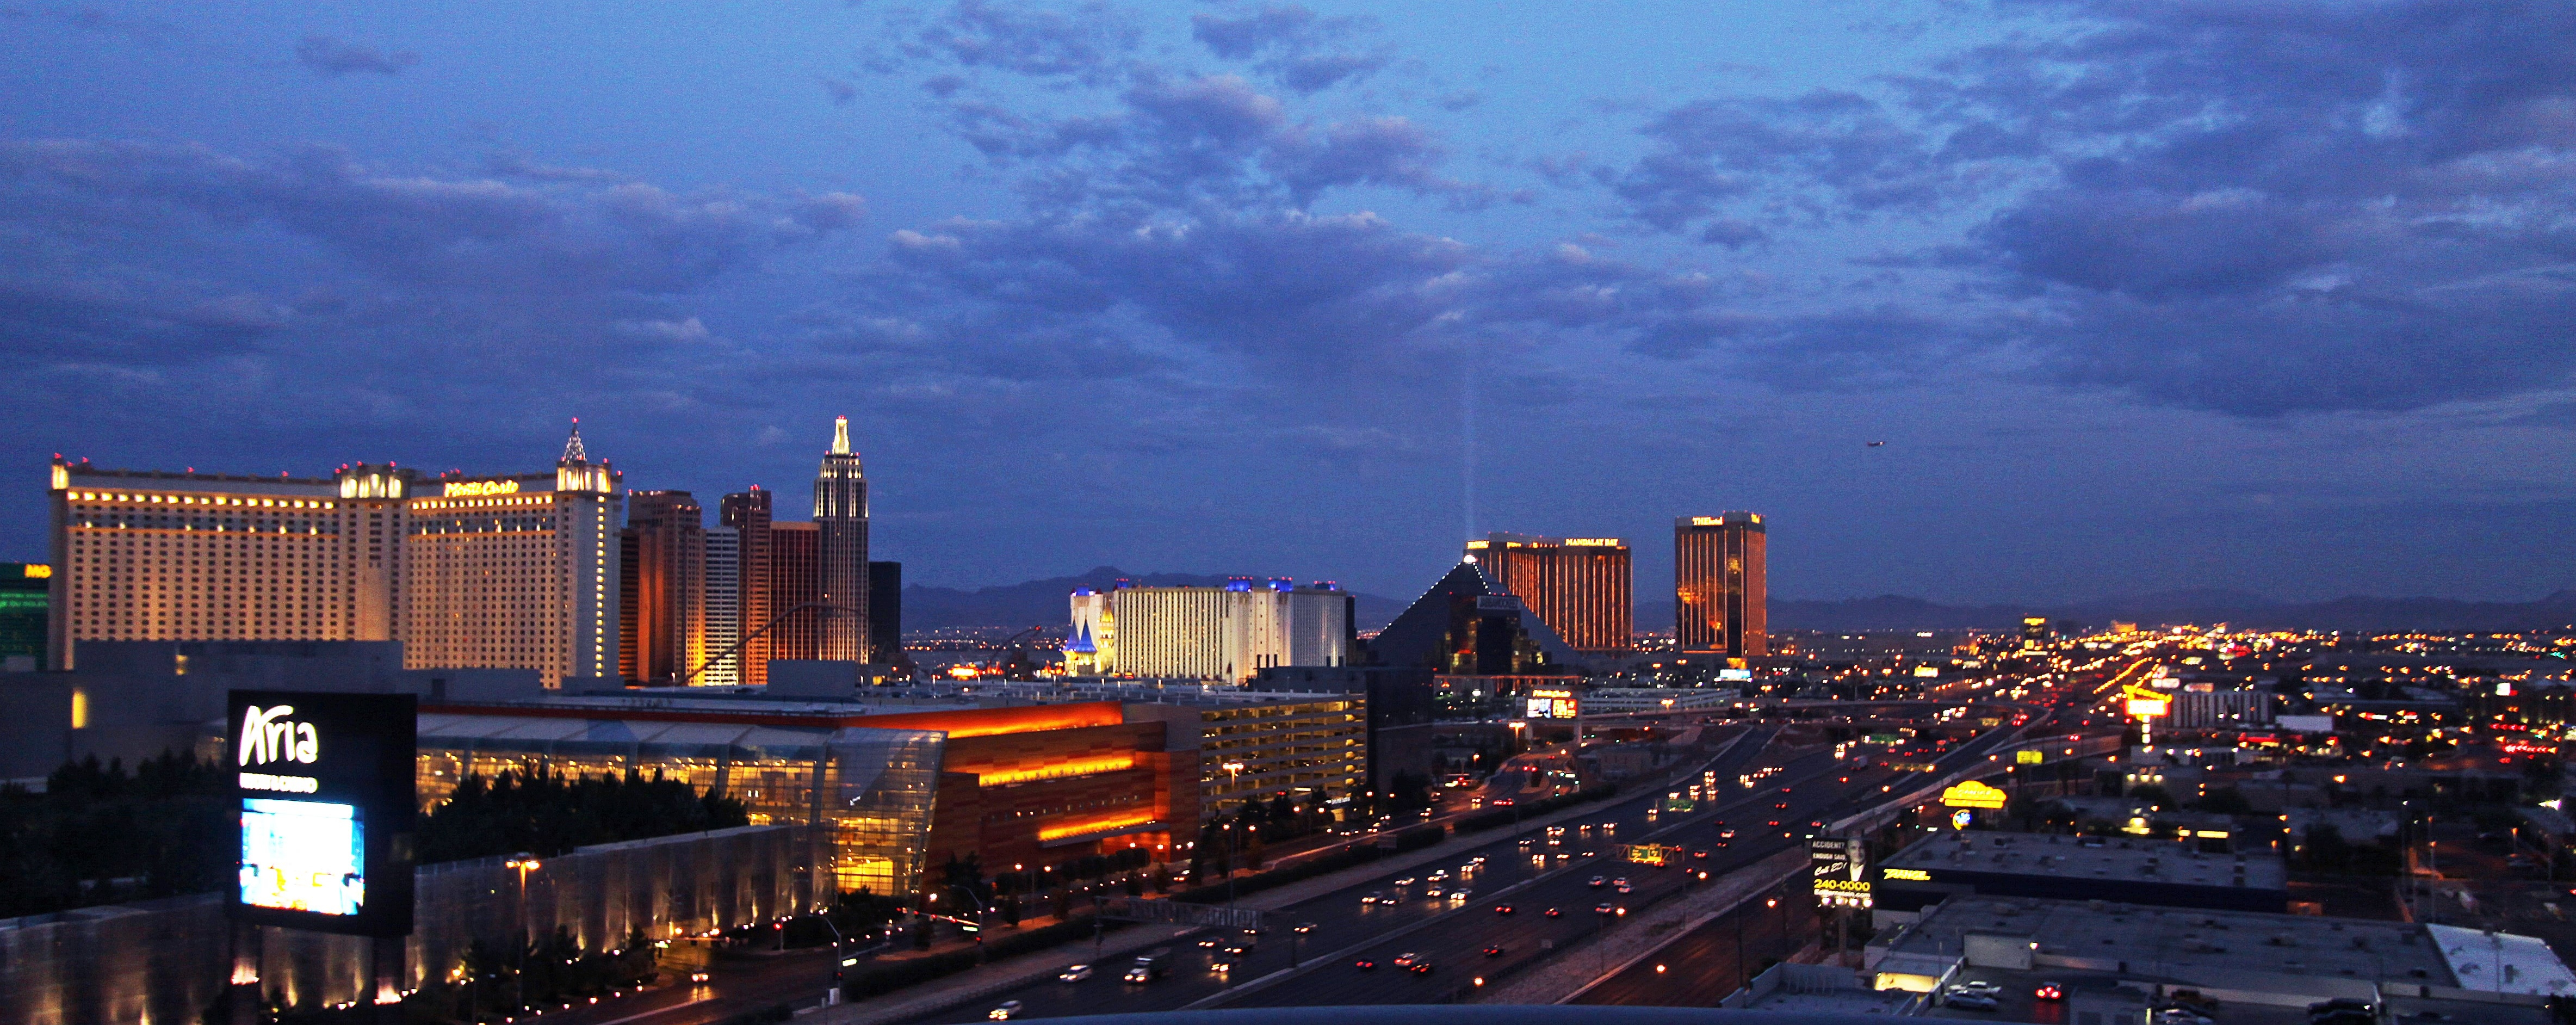 THE MARTIN LAS VEGAS 17th floor strip view